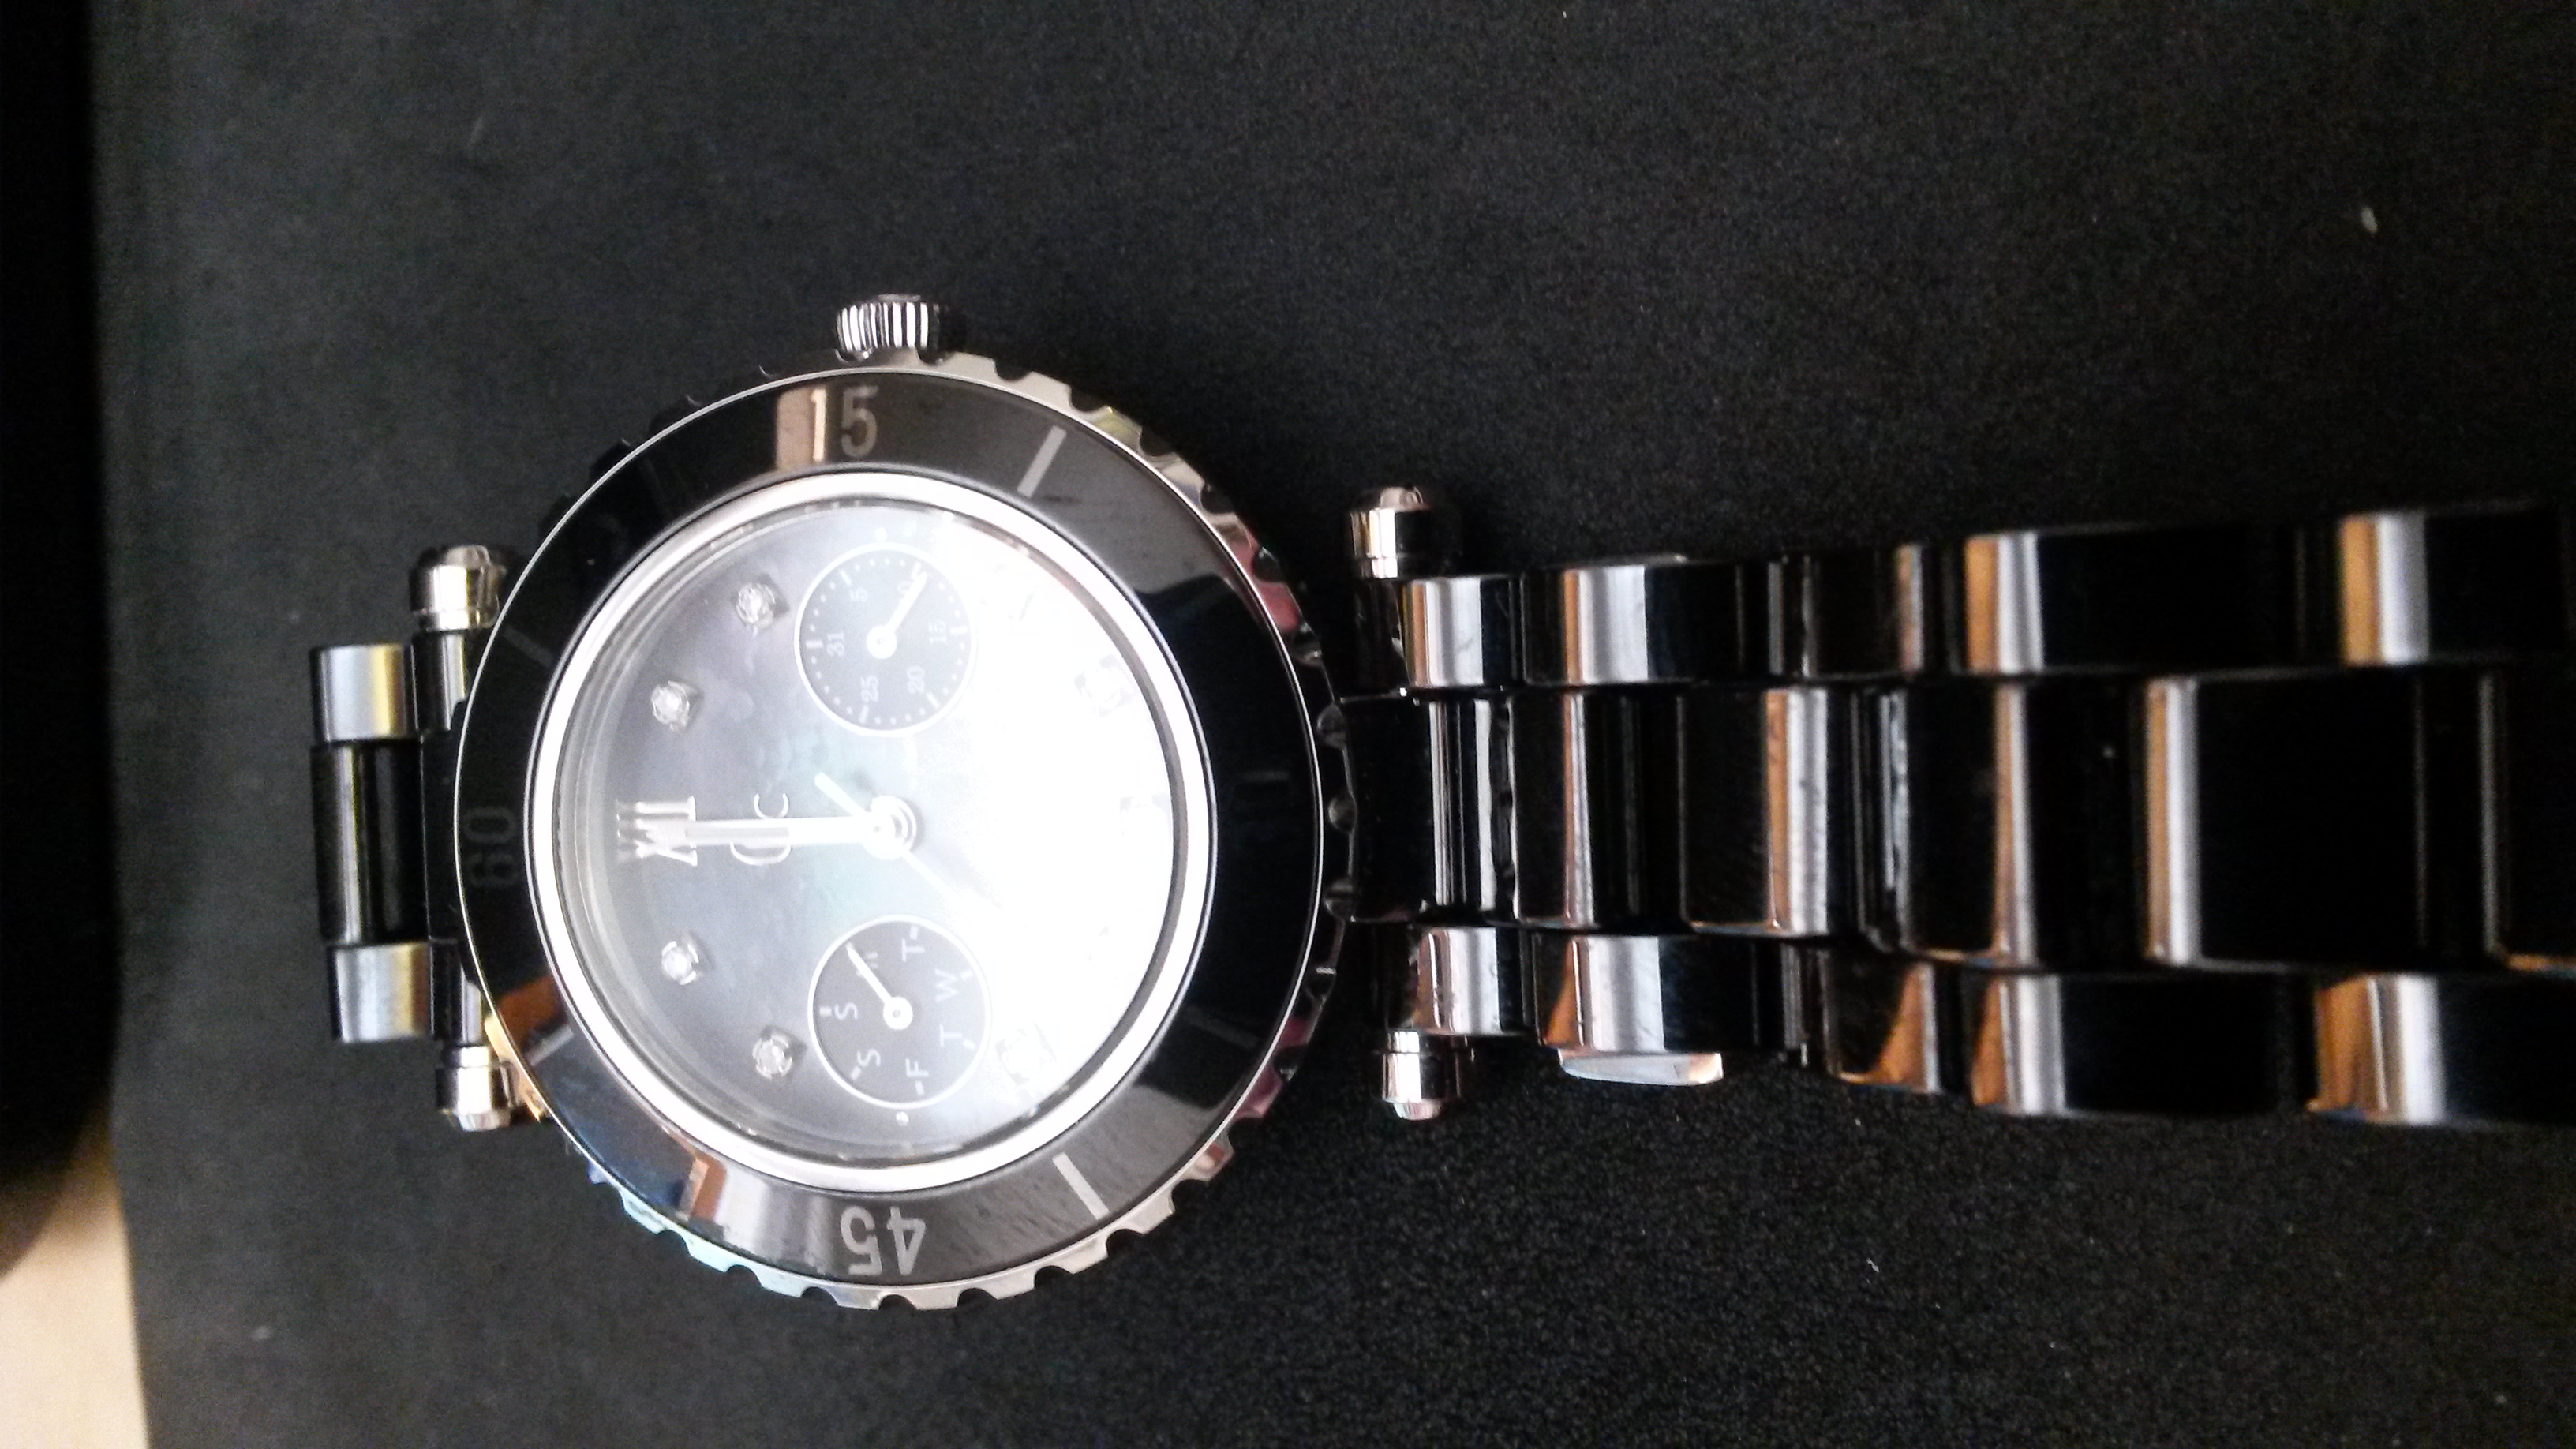 26088f0e7 A beautiful Ladies Gc Diver Chic Ceramic Diamond Watch I46003L2 , dark  grey-black strap and watch face, with two inner dials days of the week &  date see ...